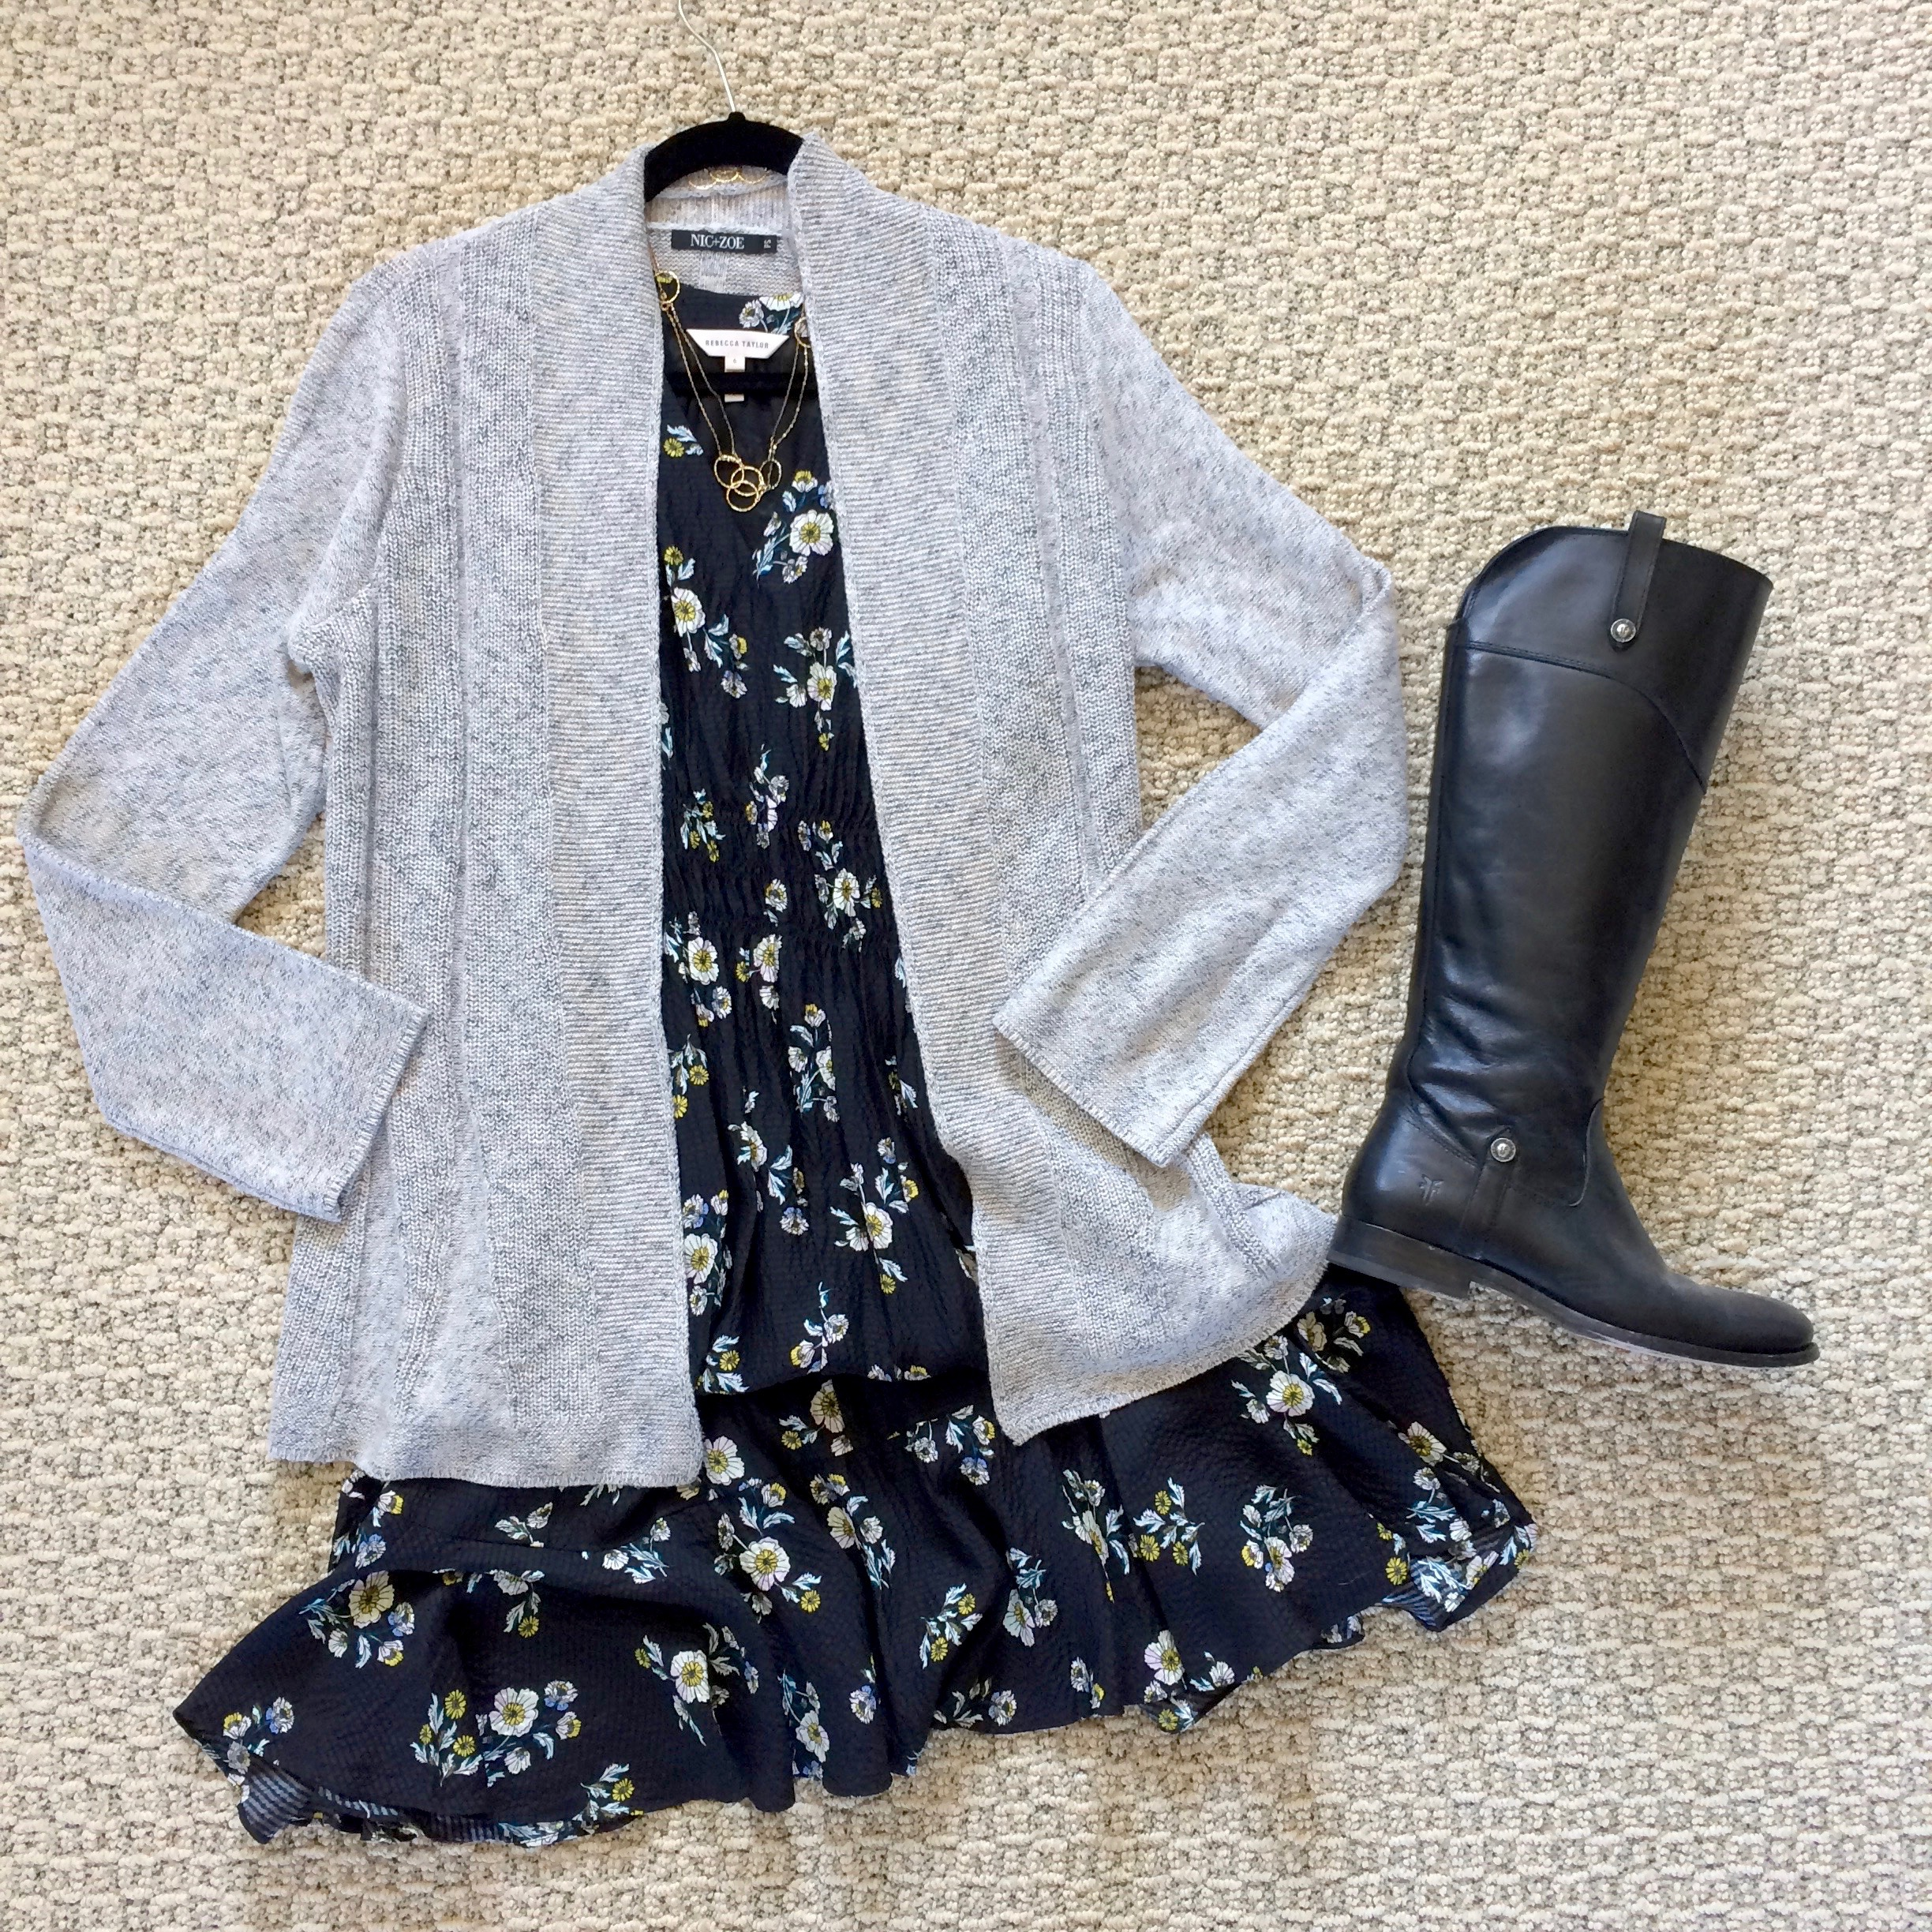 Your summer floral dress becomes winter friendly with a long cardigan, tights and knee-high boots.